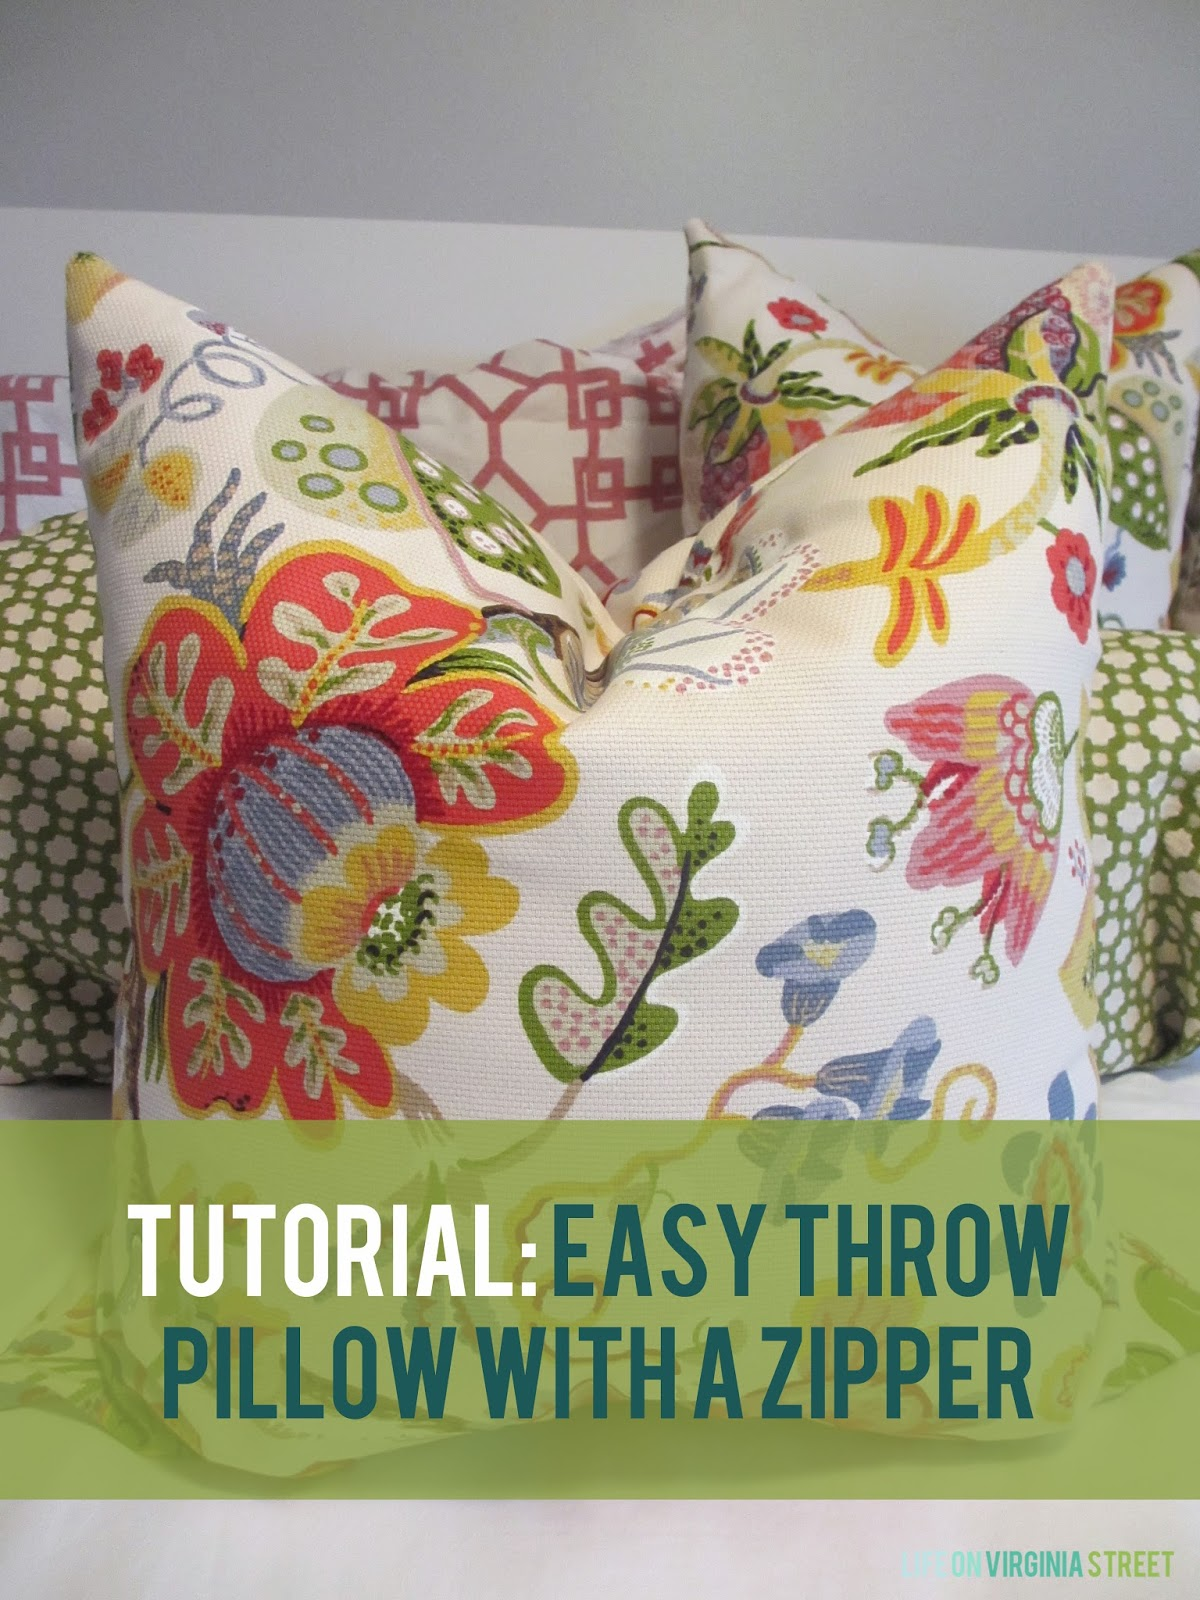 How To Make Throw Pillow With Zipper : Tutorial: Throw Pillow with a Zipper - Life On Virginia Street